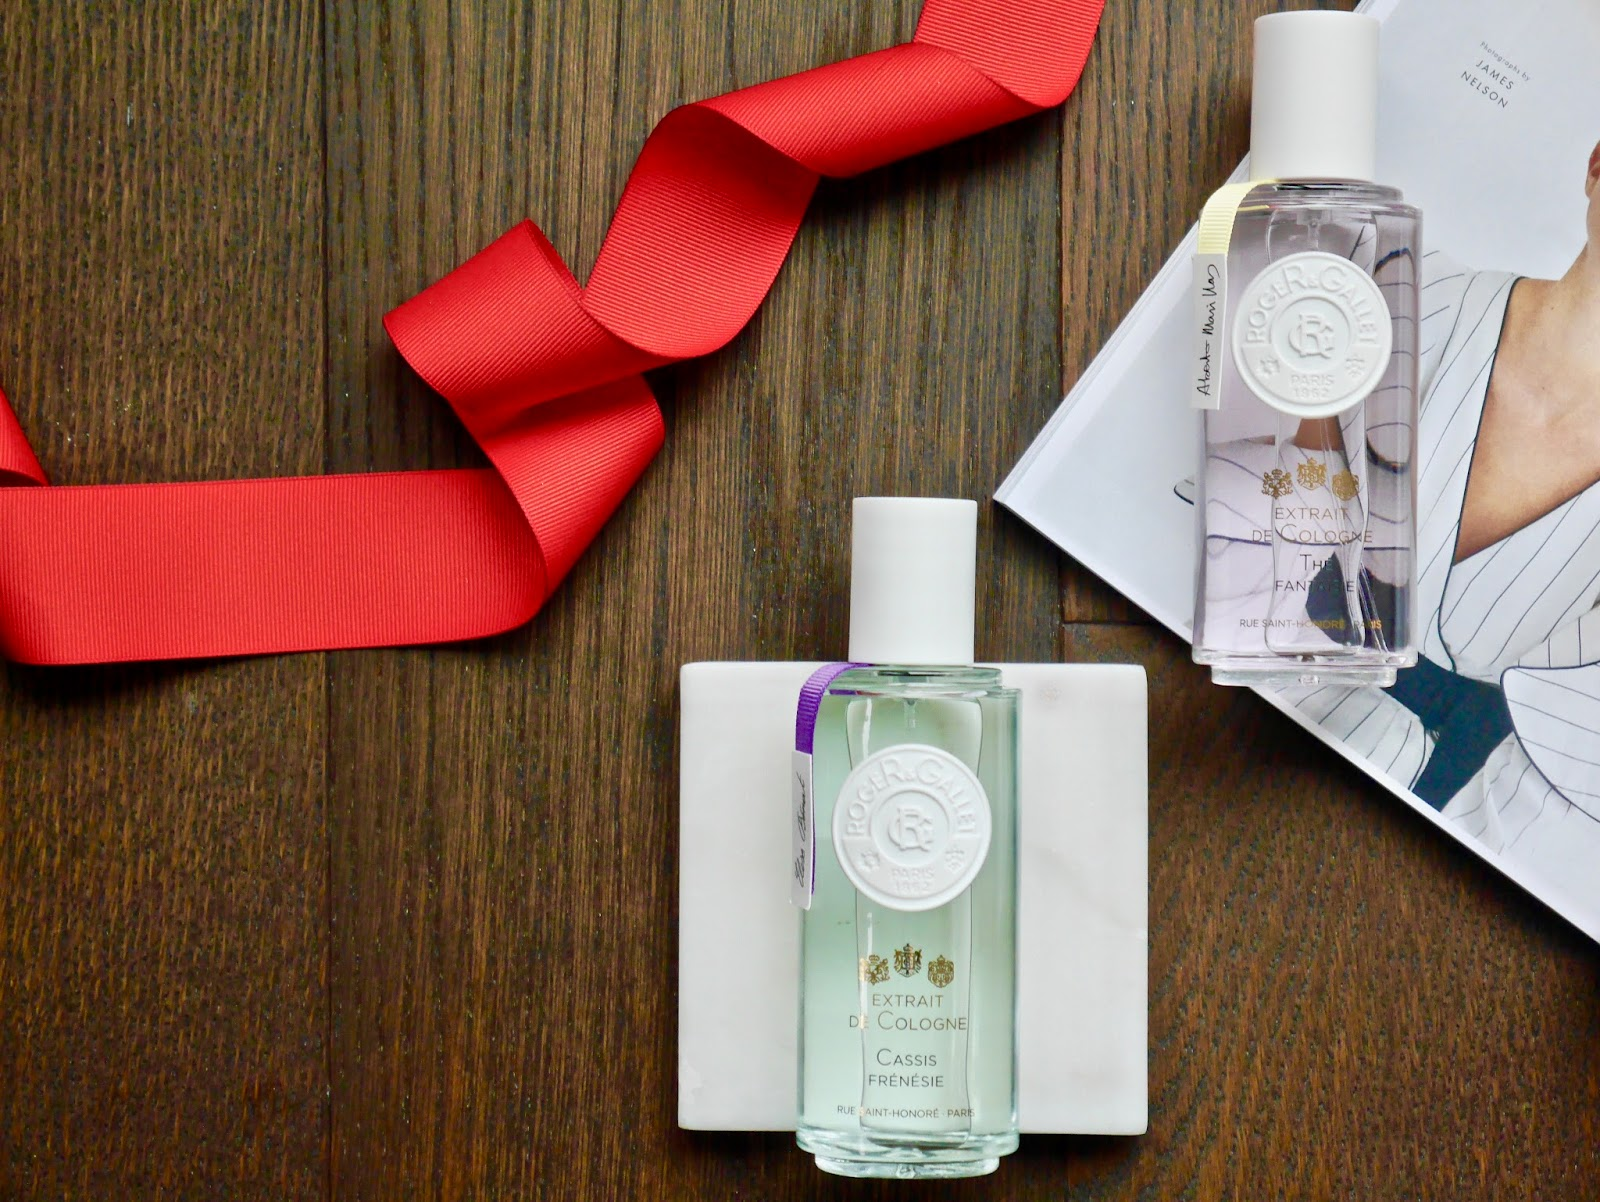 fragrance, perfume, scent, smell, beauty, Canadian beauty, luxury brand